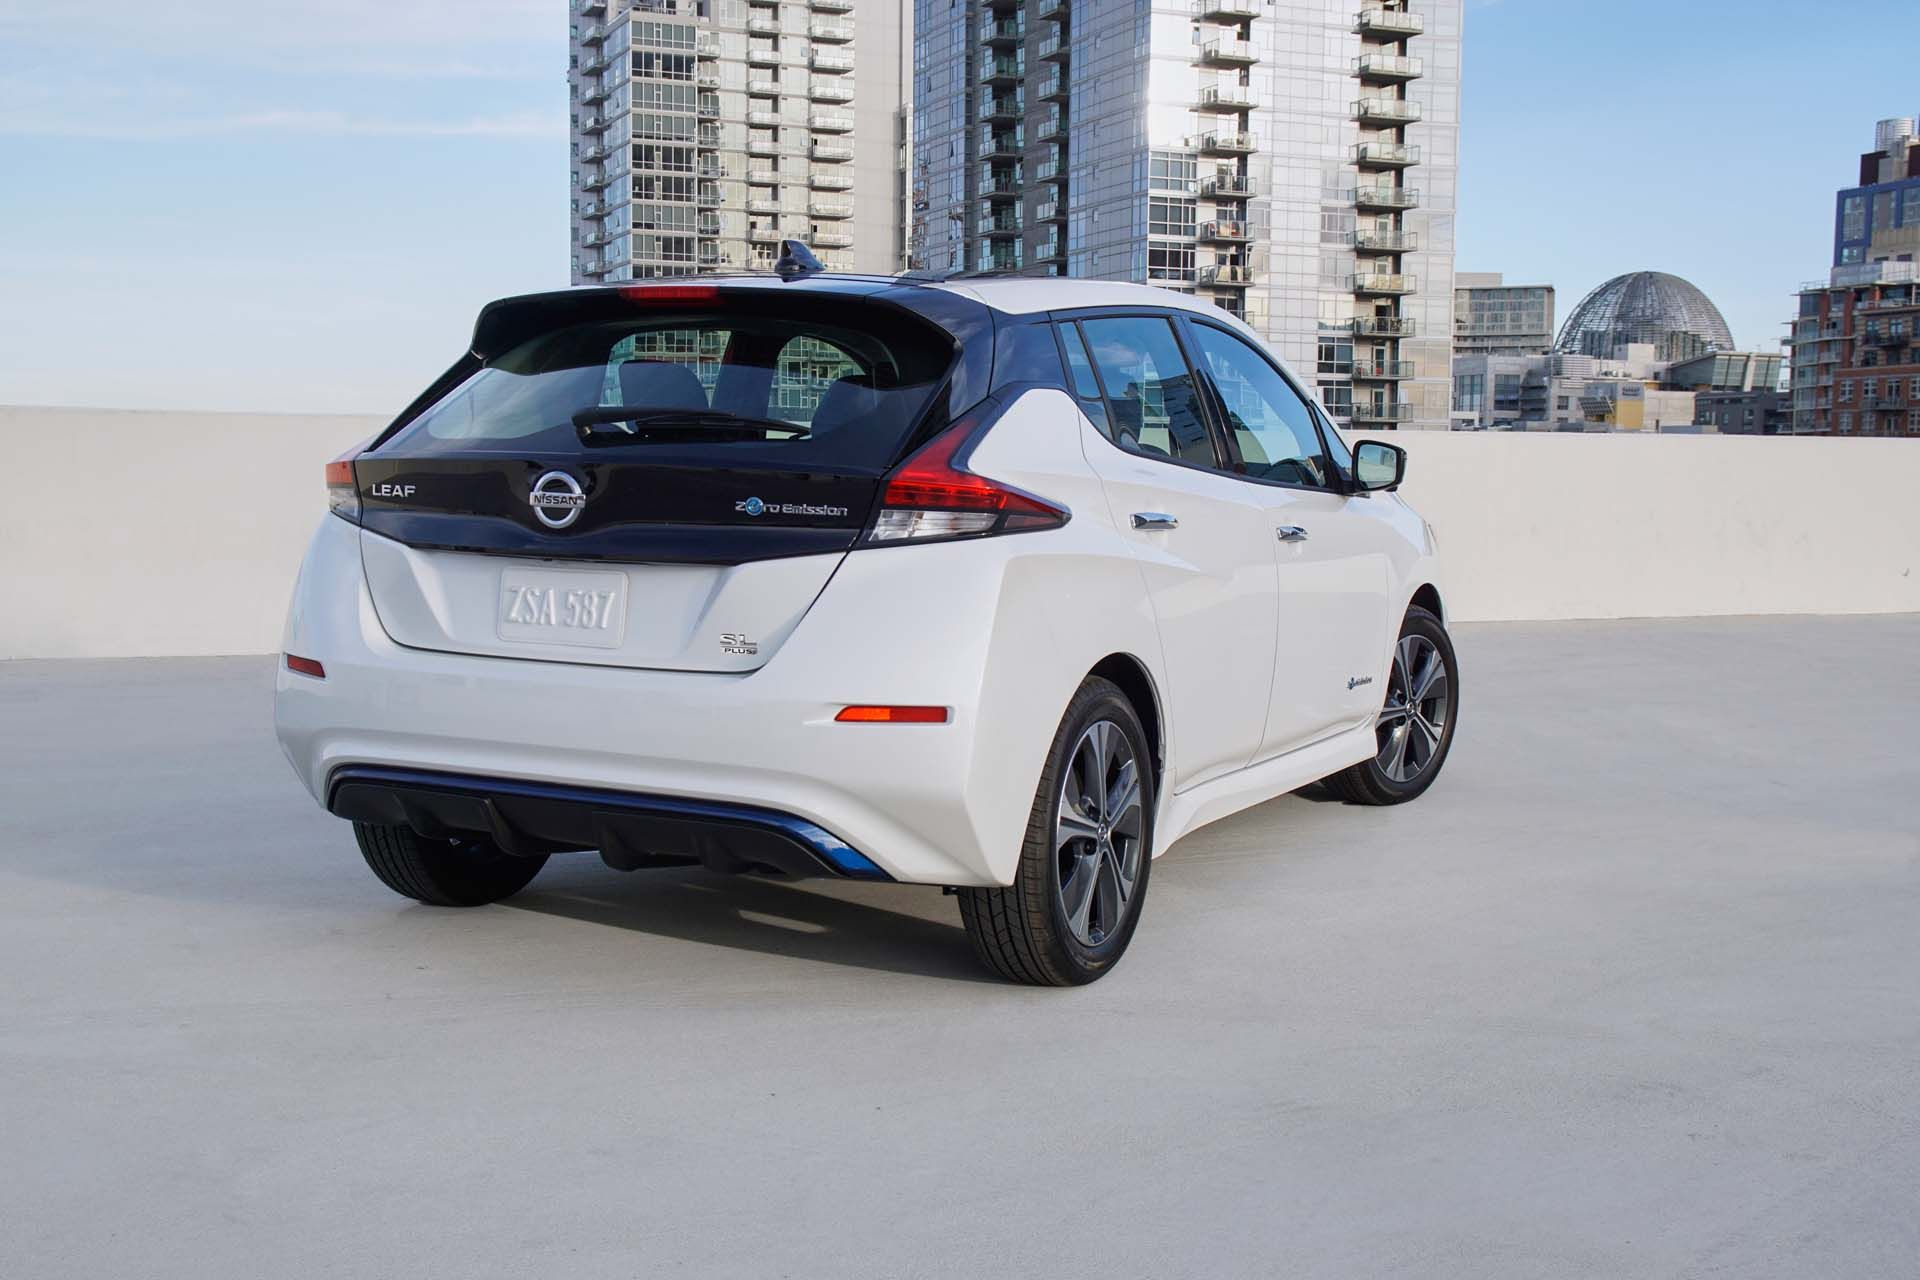 2019 Nissan Leaf Plus vs Leaf A first look at the